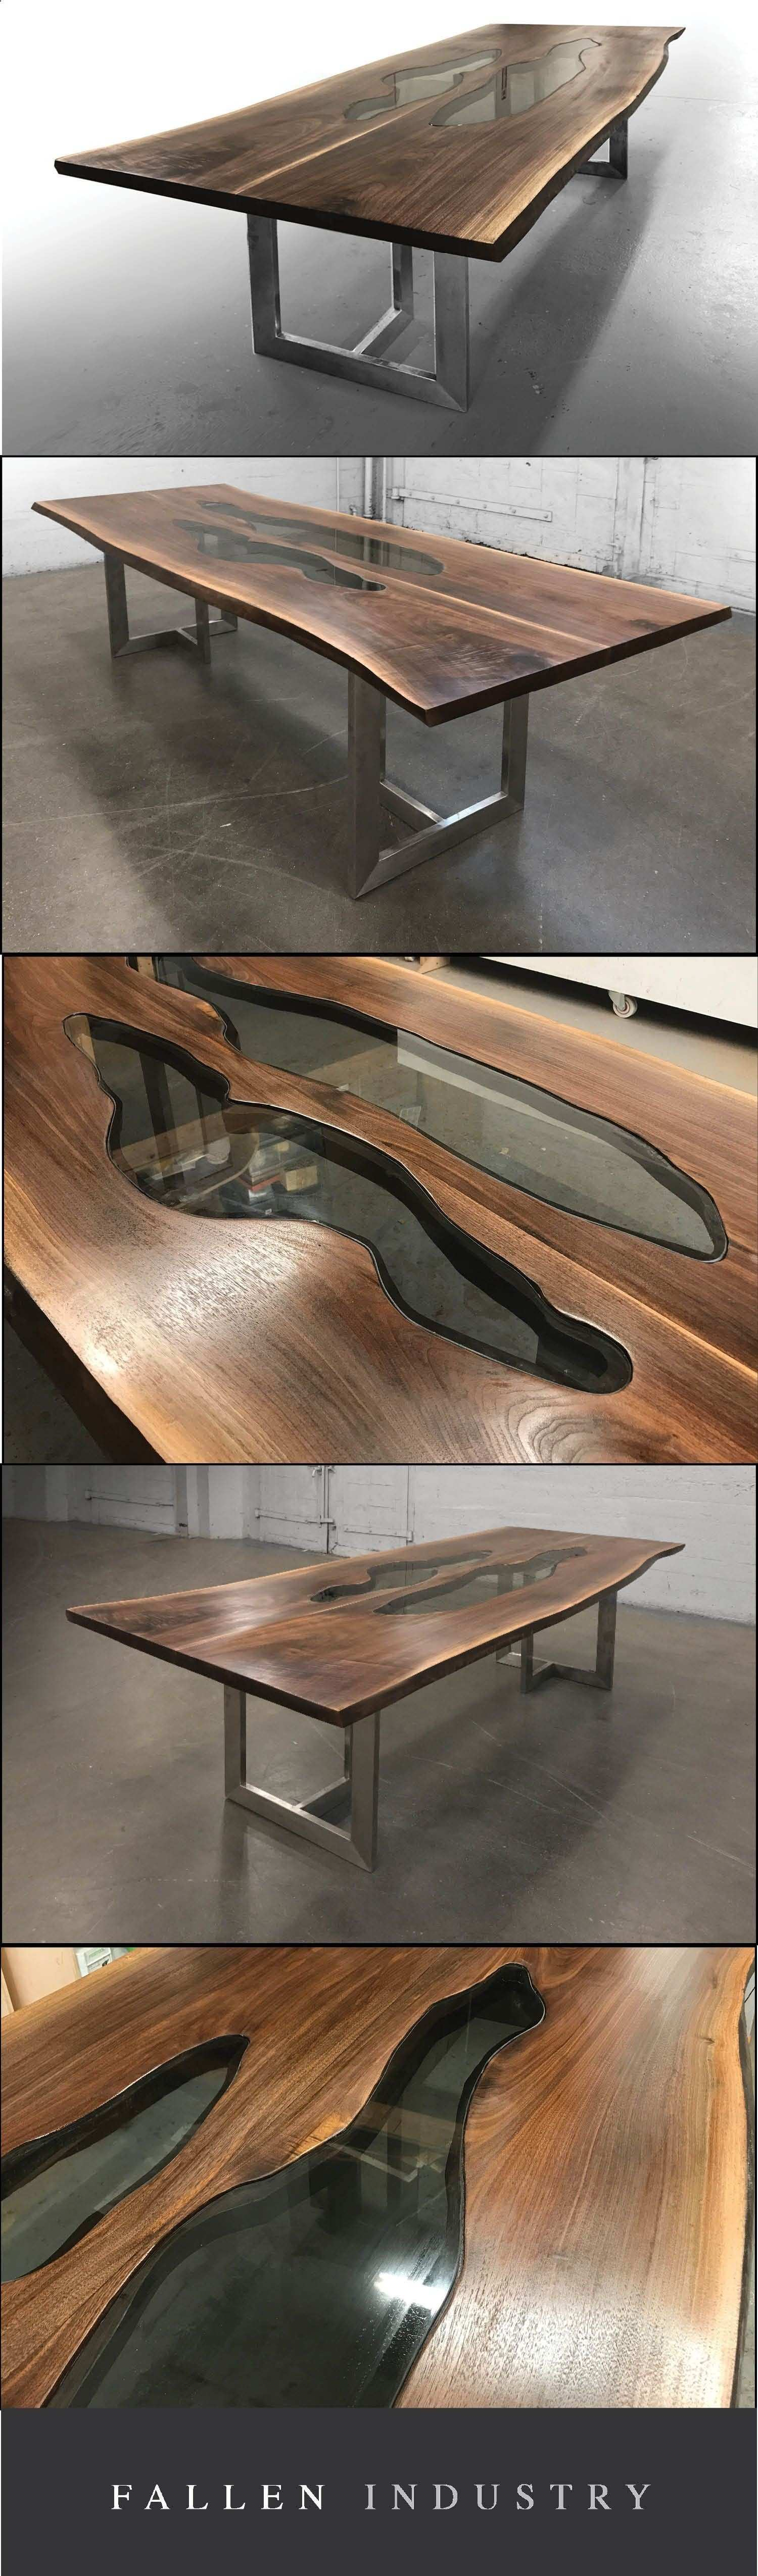 Teds Wood Working Live edge walnut slab table with glass inlays